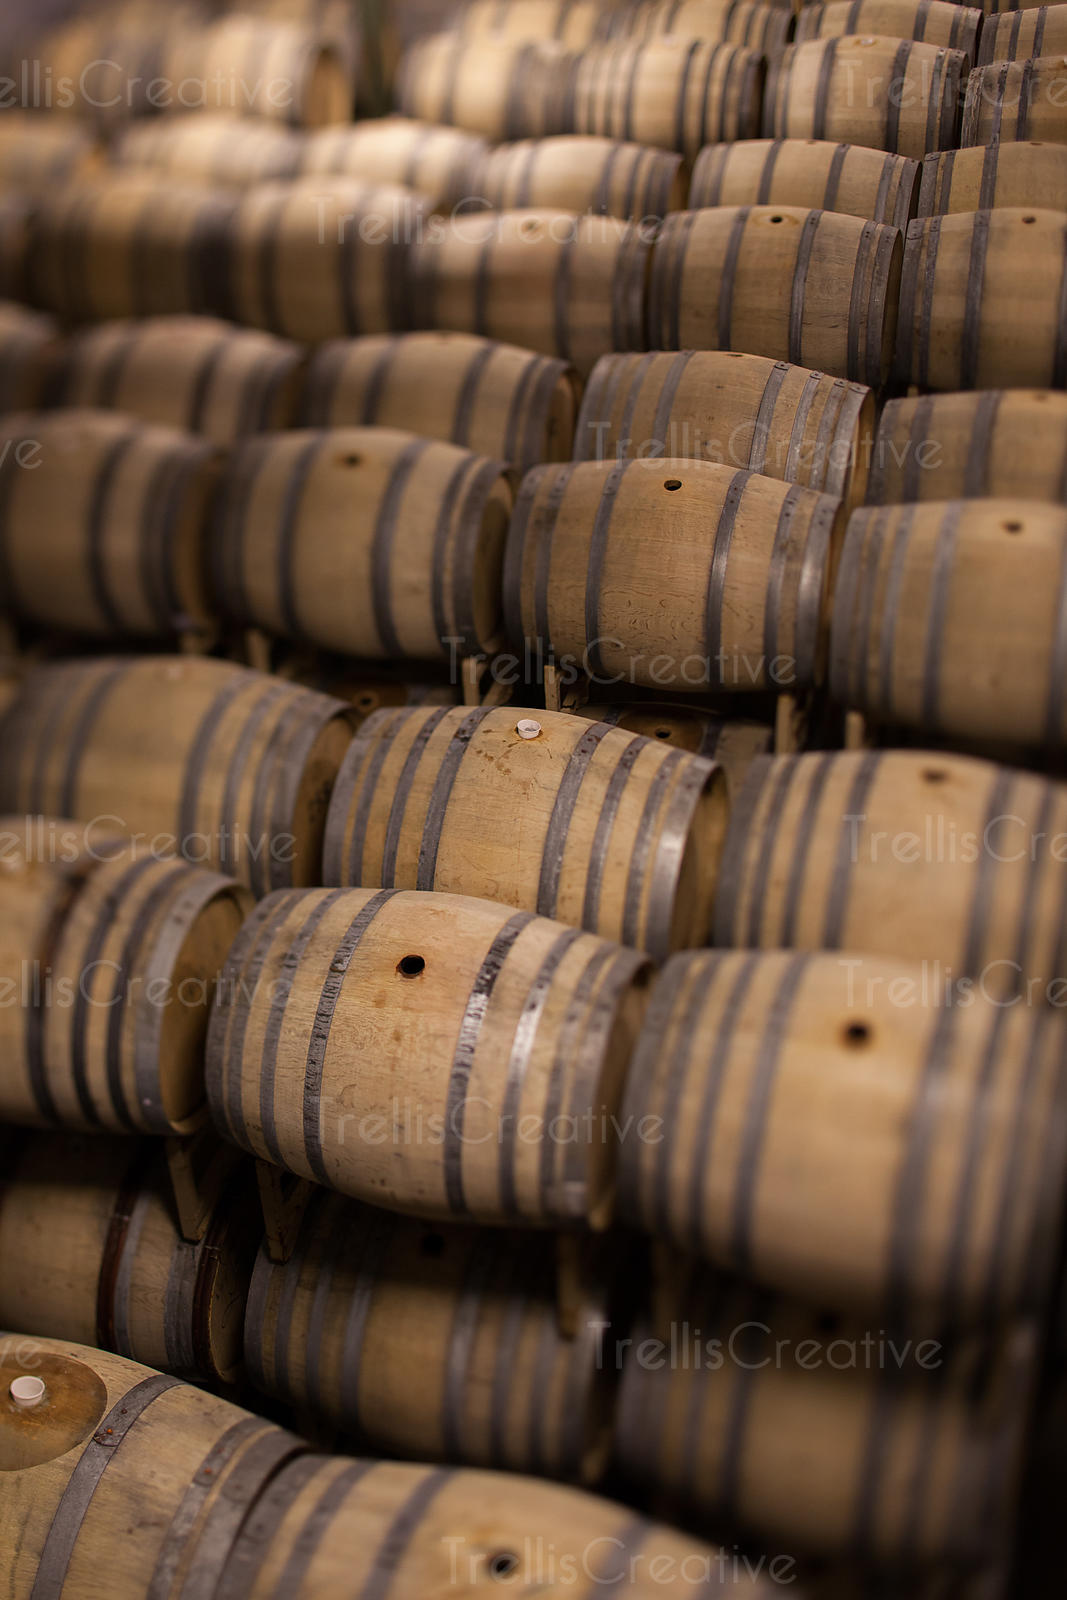 Winery cellar filled with stacked oak wine barrels.